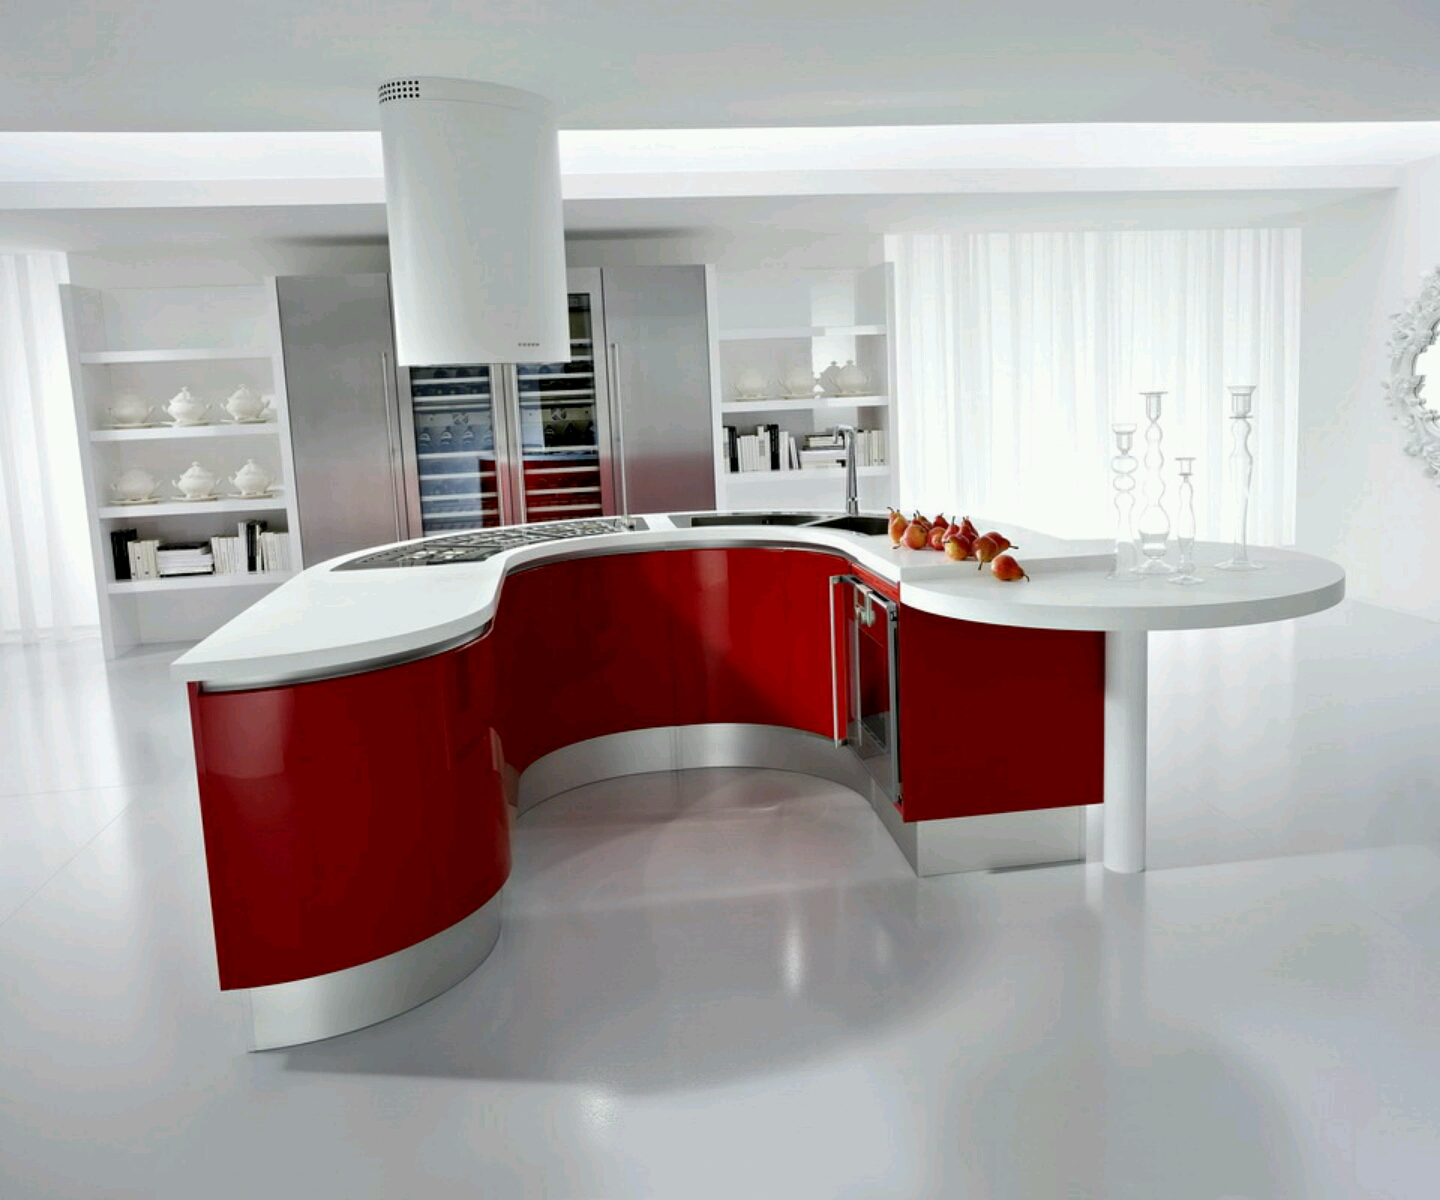 Modern kitchen cabinets designs ideas furniture gallery for Kitchen cabinets and design